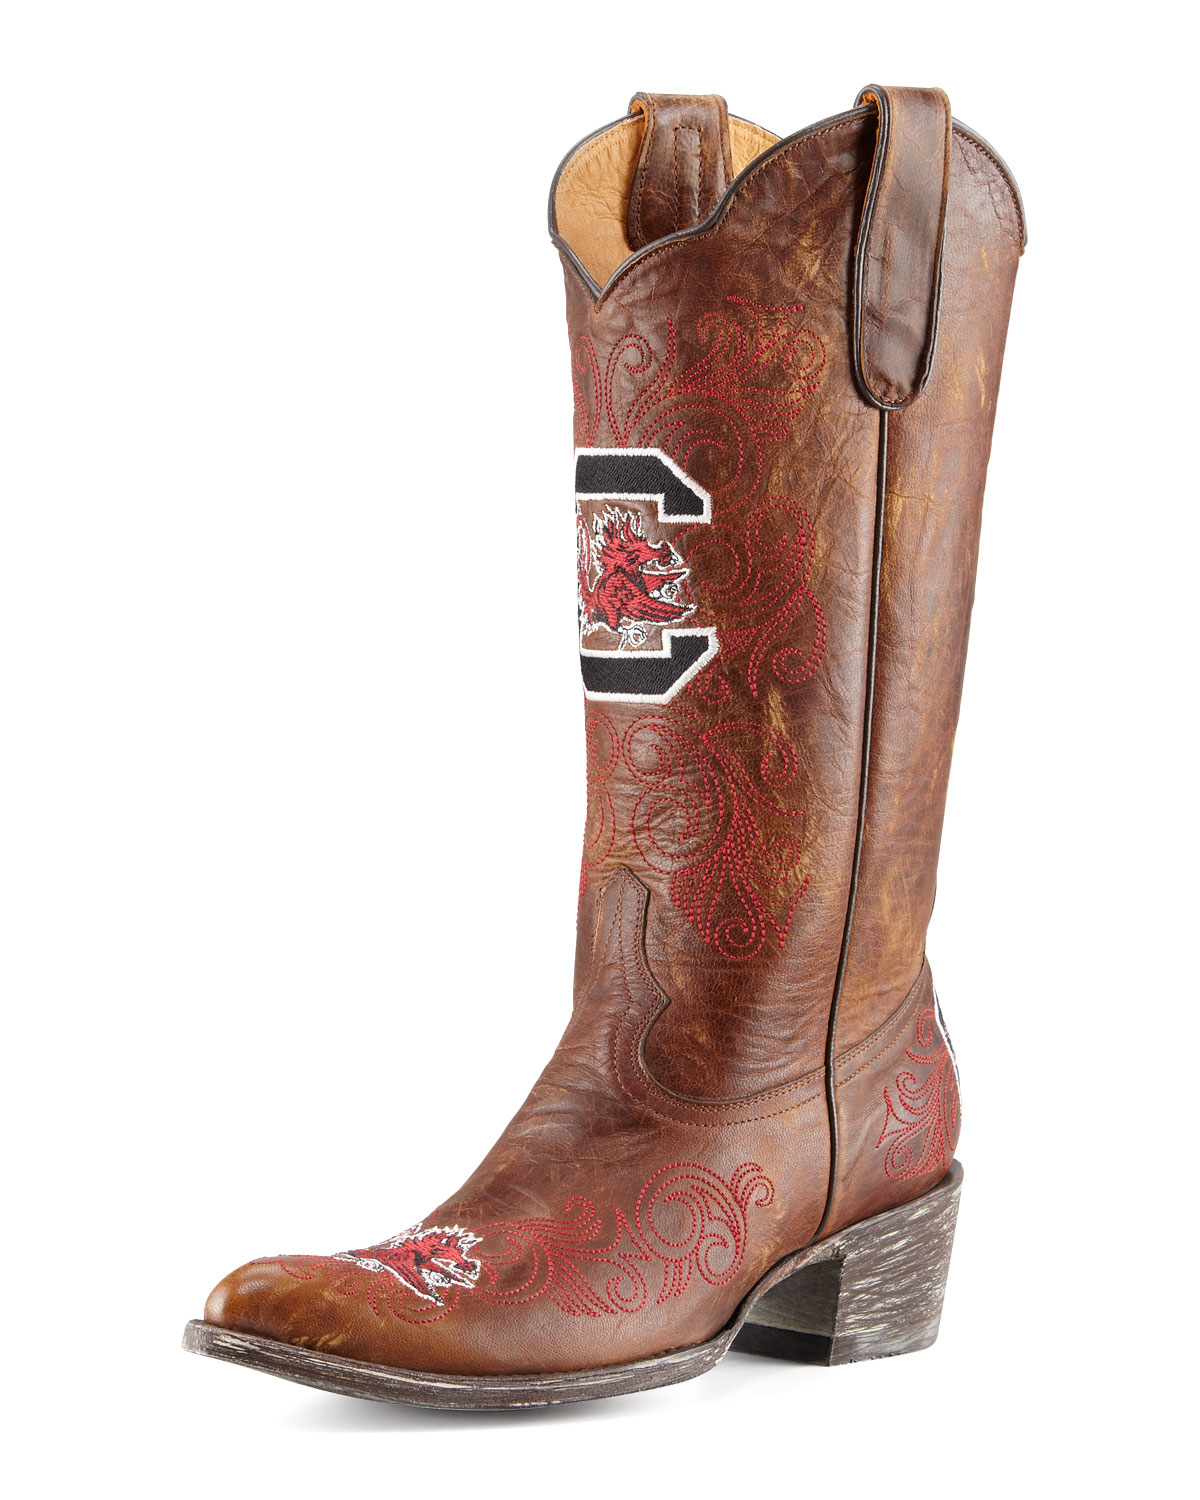 University of South Carolina Tall Gameday Boots, Brass   Gameday Boot Company